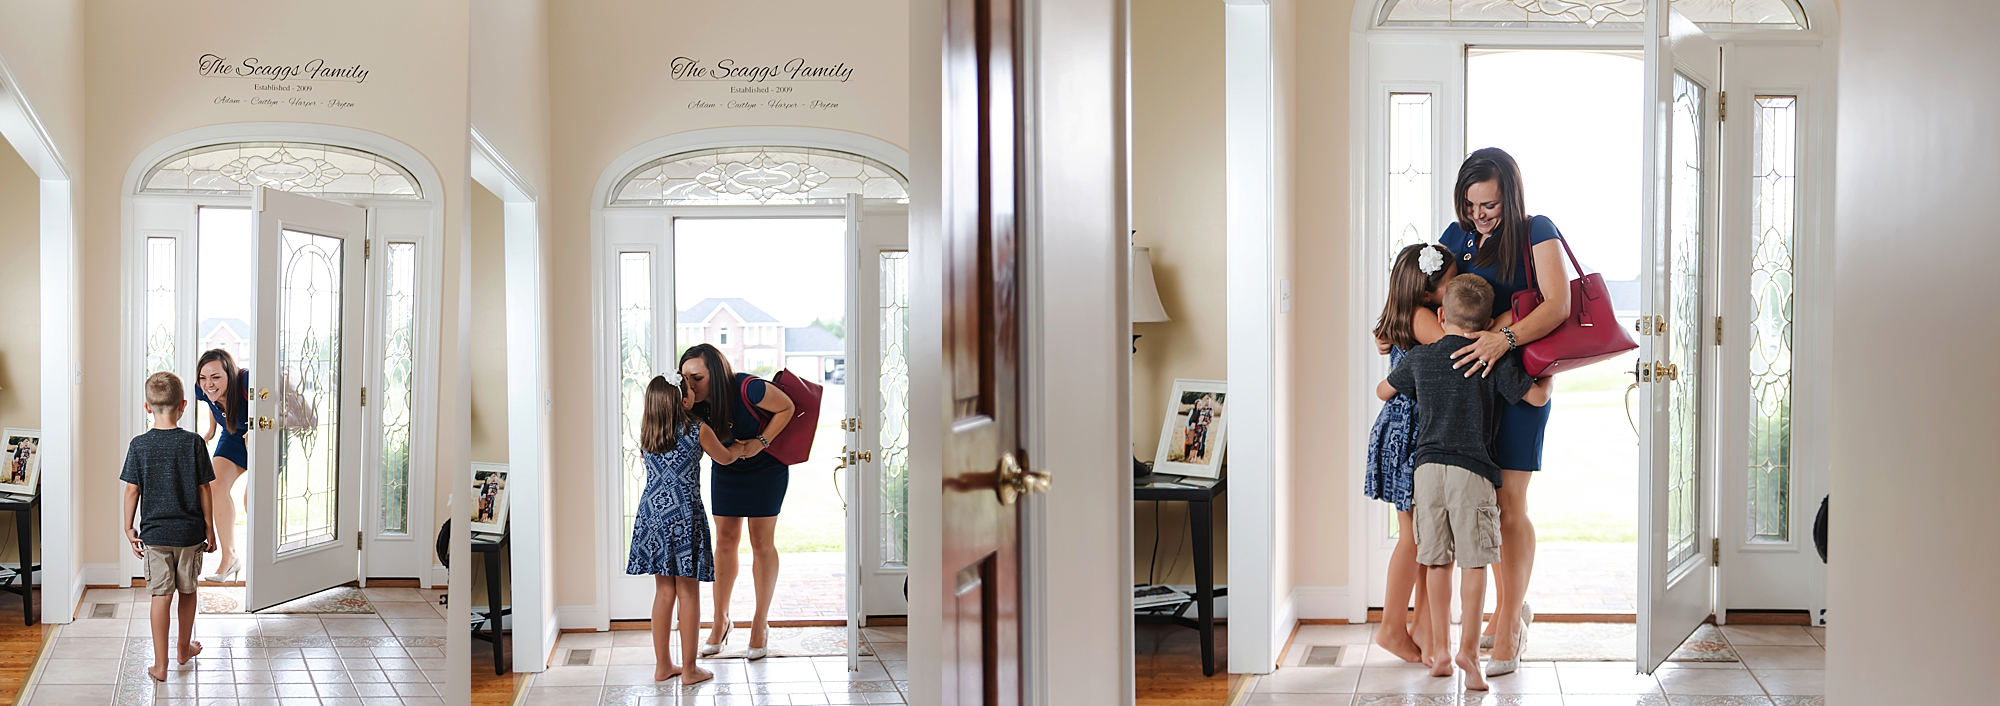 personal_branding_photographer_kristina_rose_photography working mom coming home